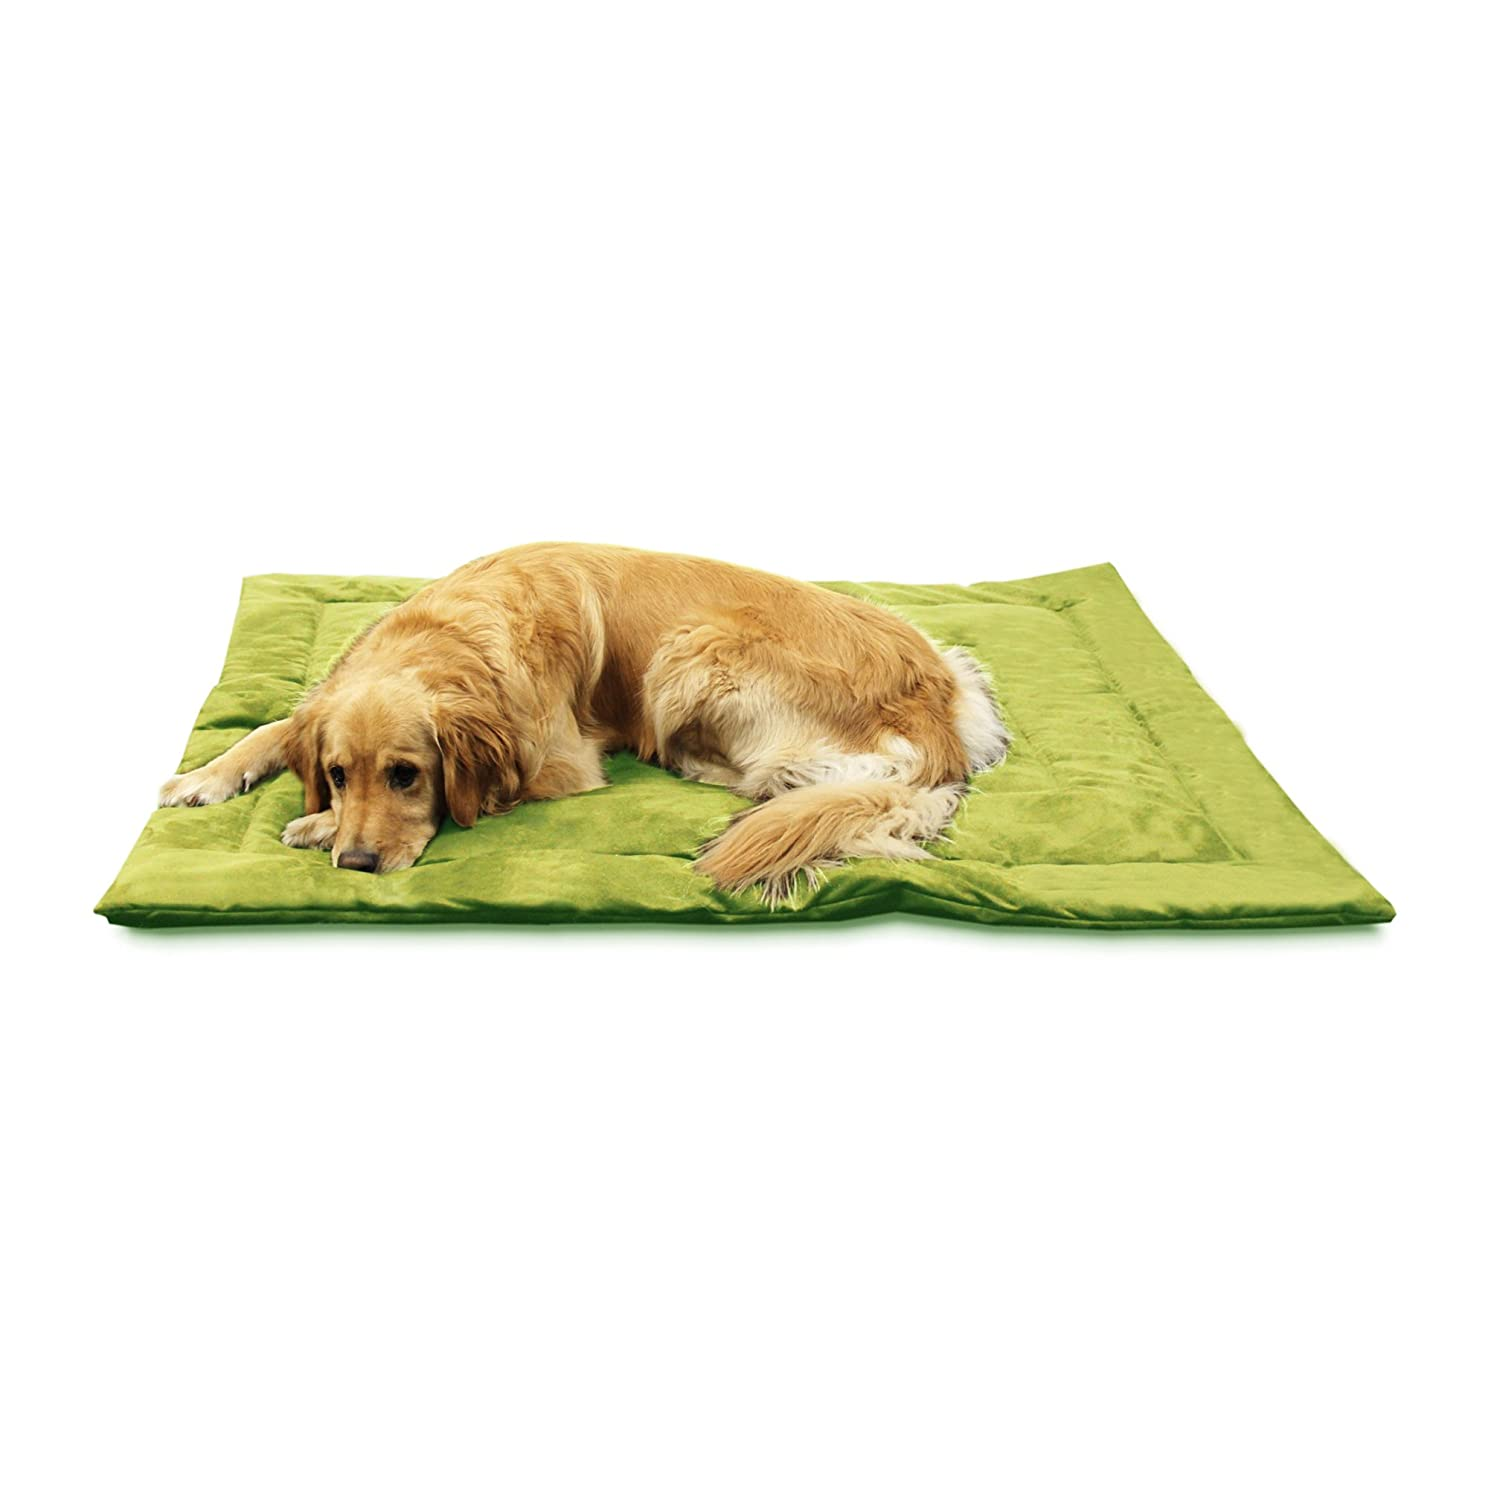 Kiwi Green Best Friends by Sheri Nap Mat Suede Pet Bed, 27-by-36-inches, Medium, Kiwi Green